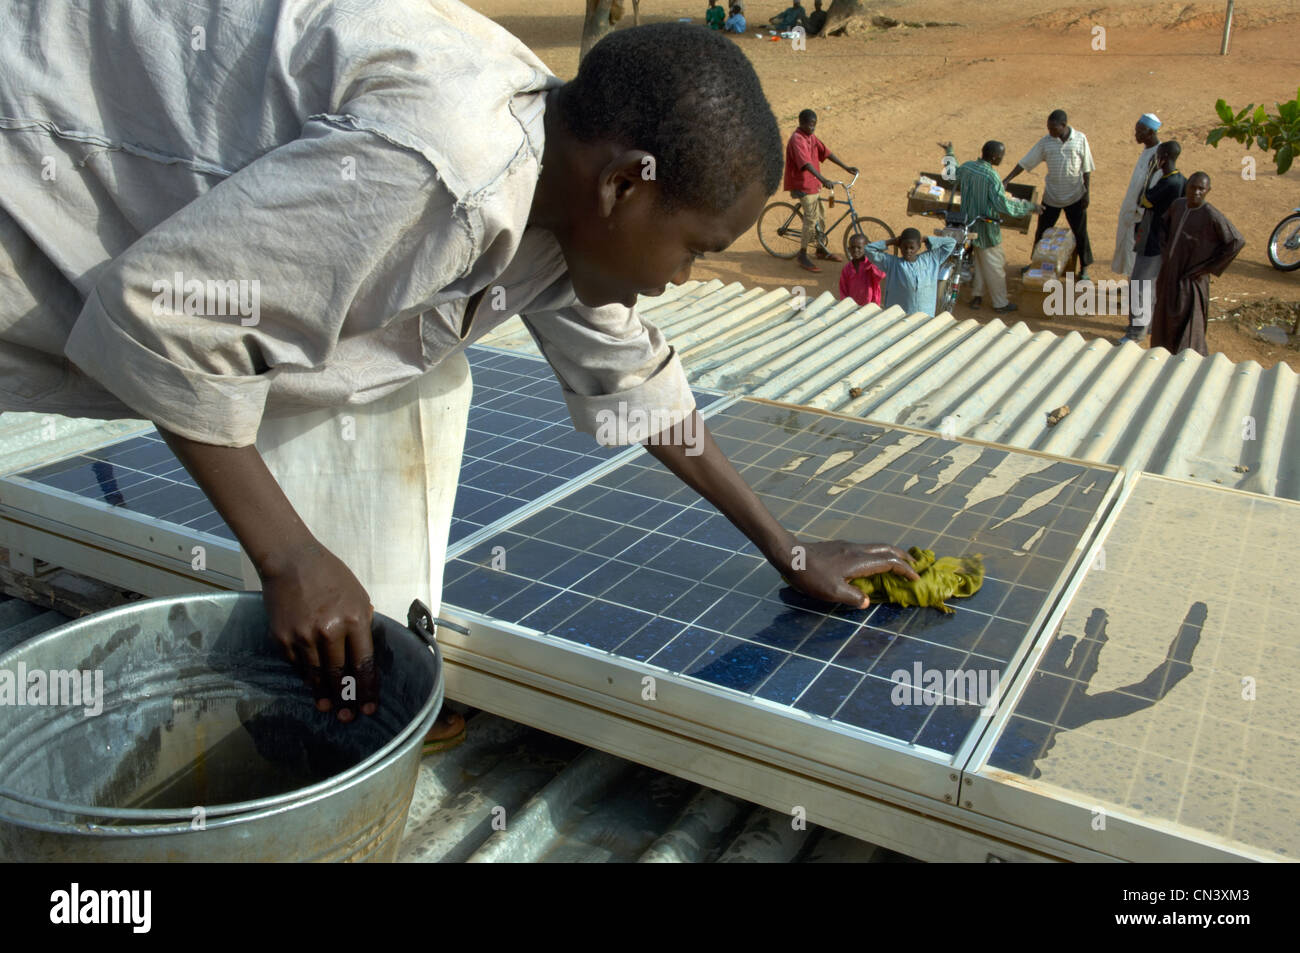 Young boy cleans dust of solar panels in Africa - Stock Image